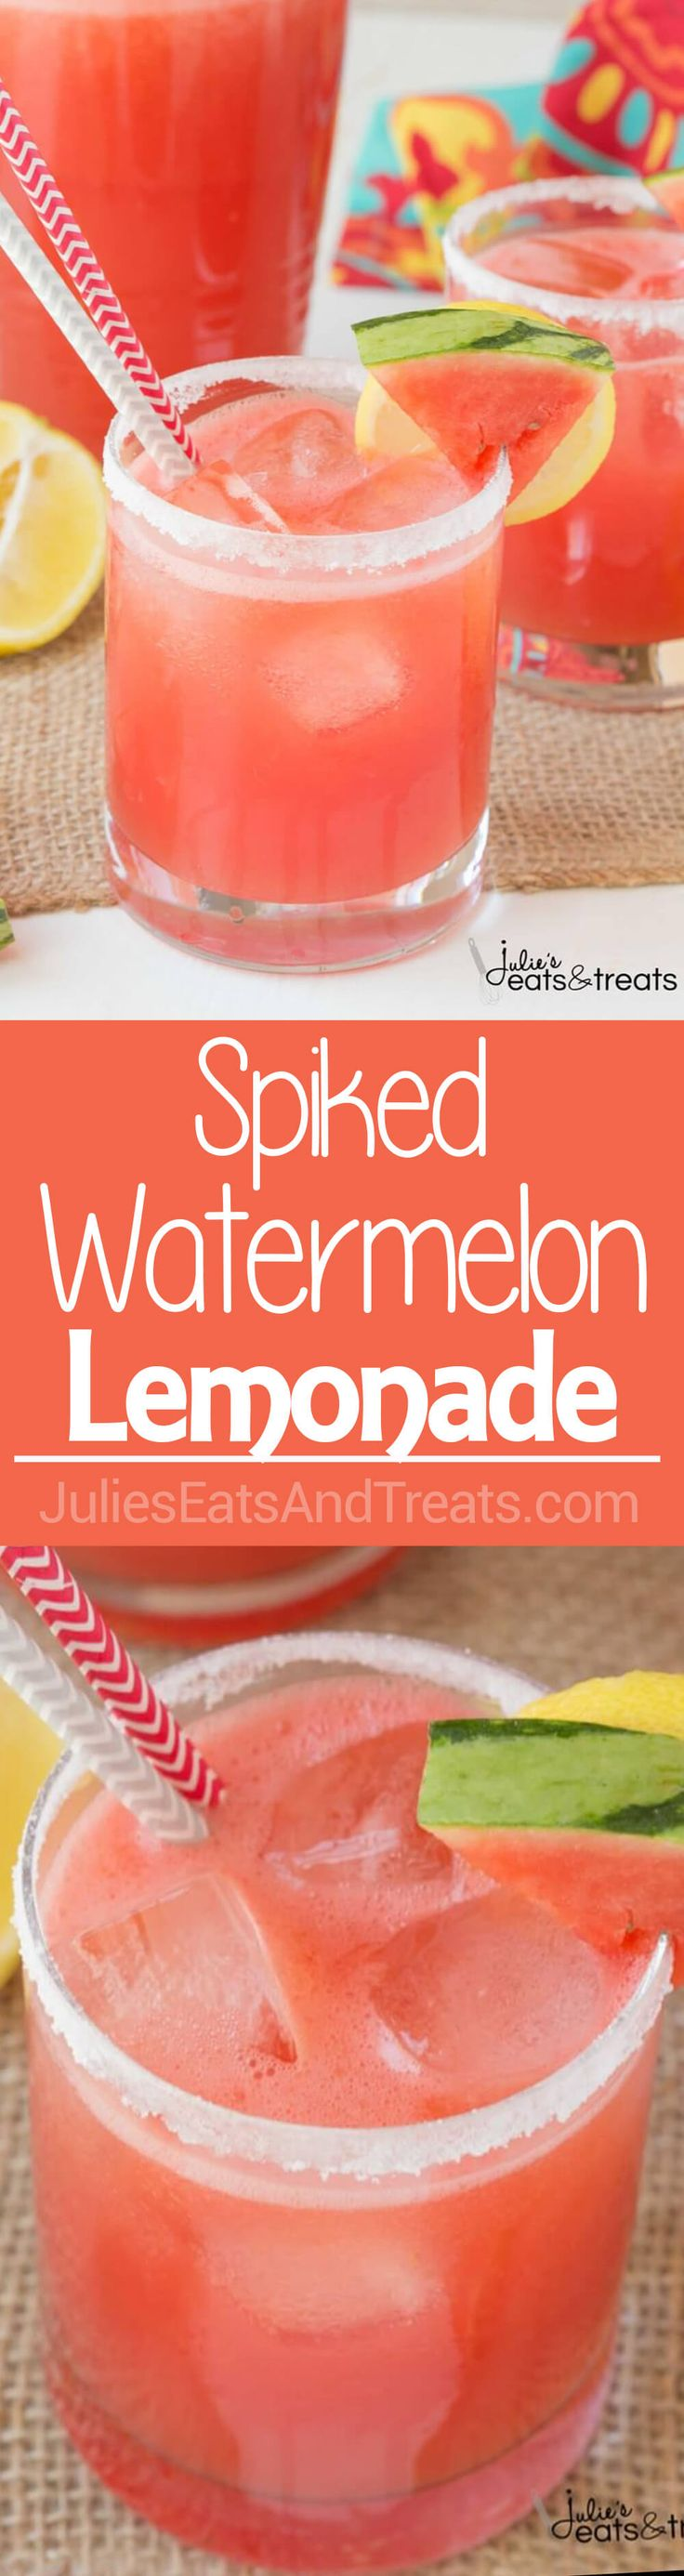 Spiked Watermelon Lemonade is a delicious blend of watermelon, frozen lemonade and vodka. This is one adult drink you won't want to pass up this summer! ~ http://www.julieseatsandtreats.com